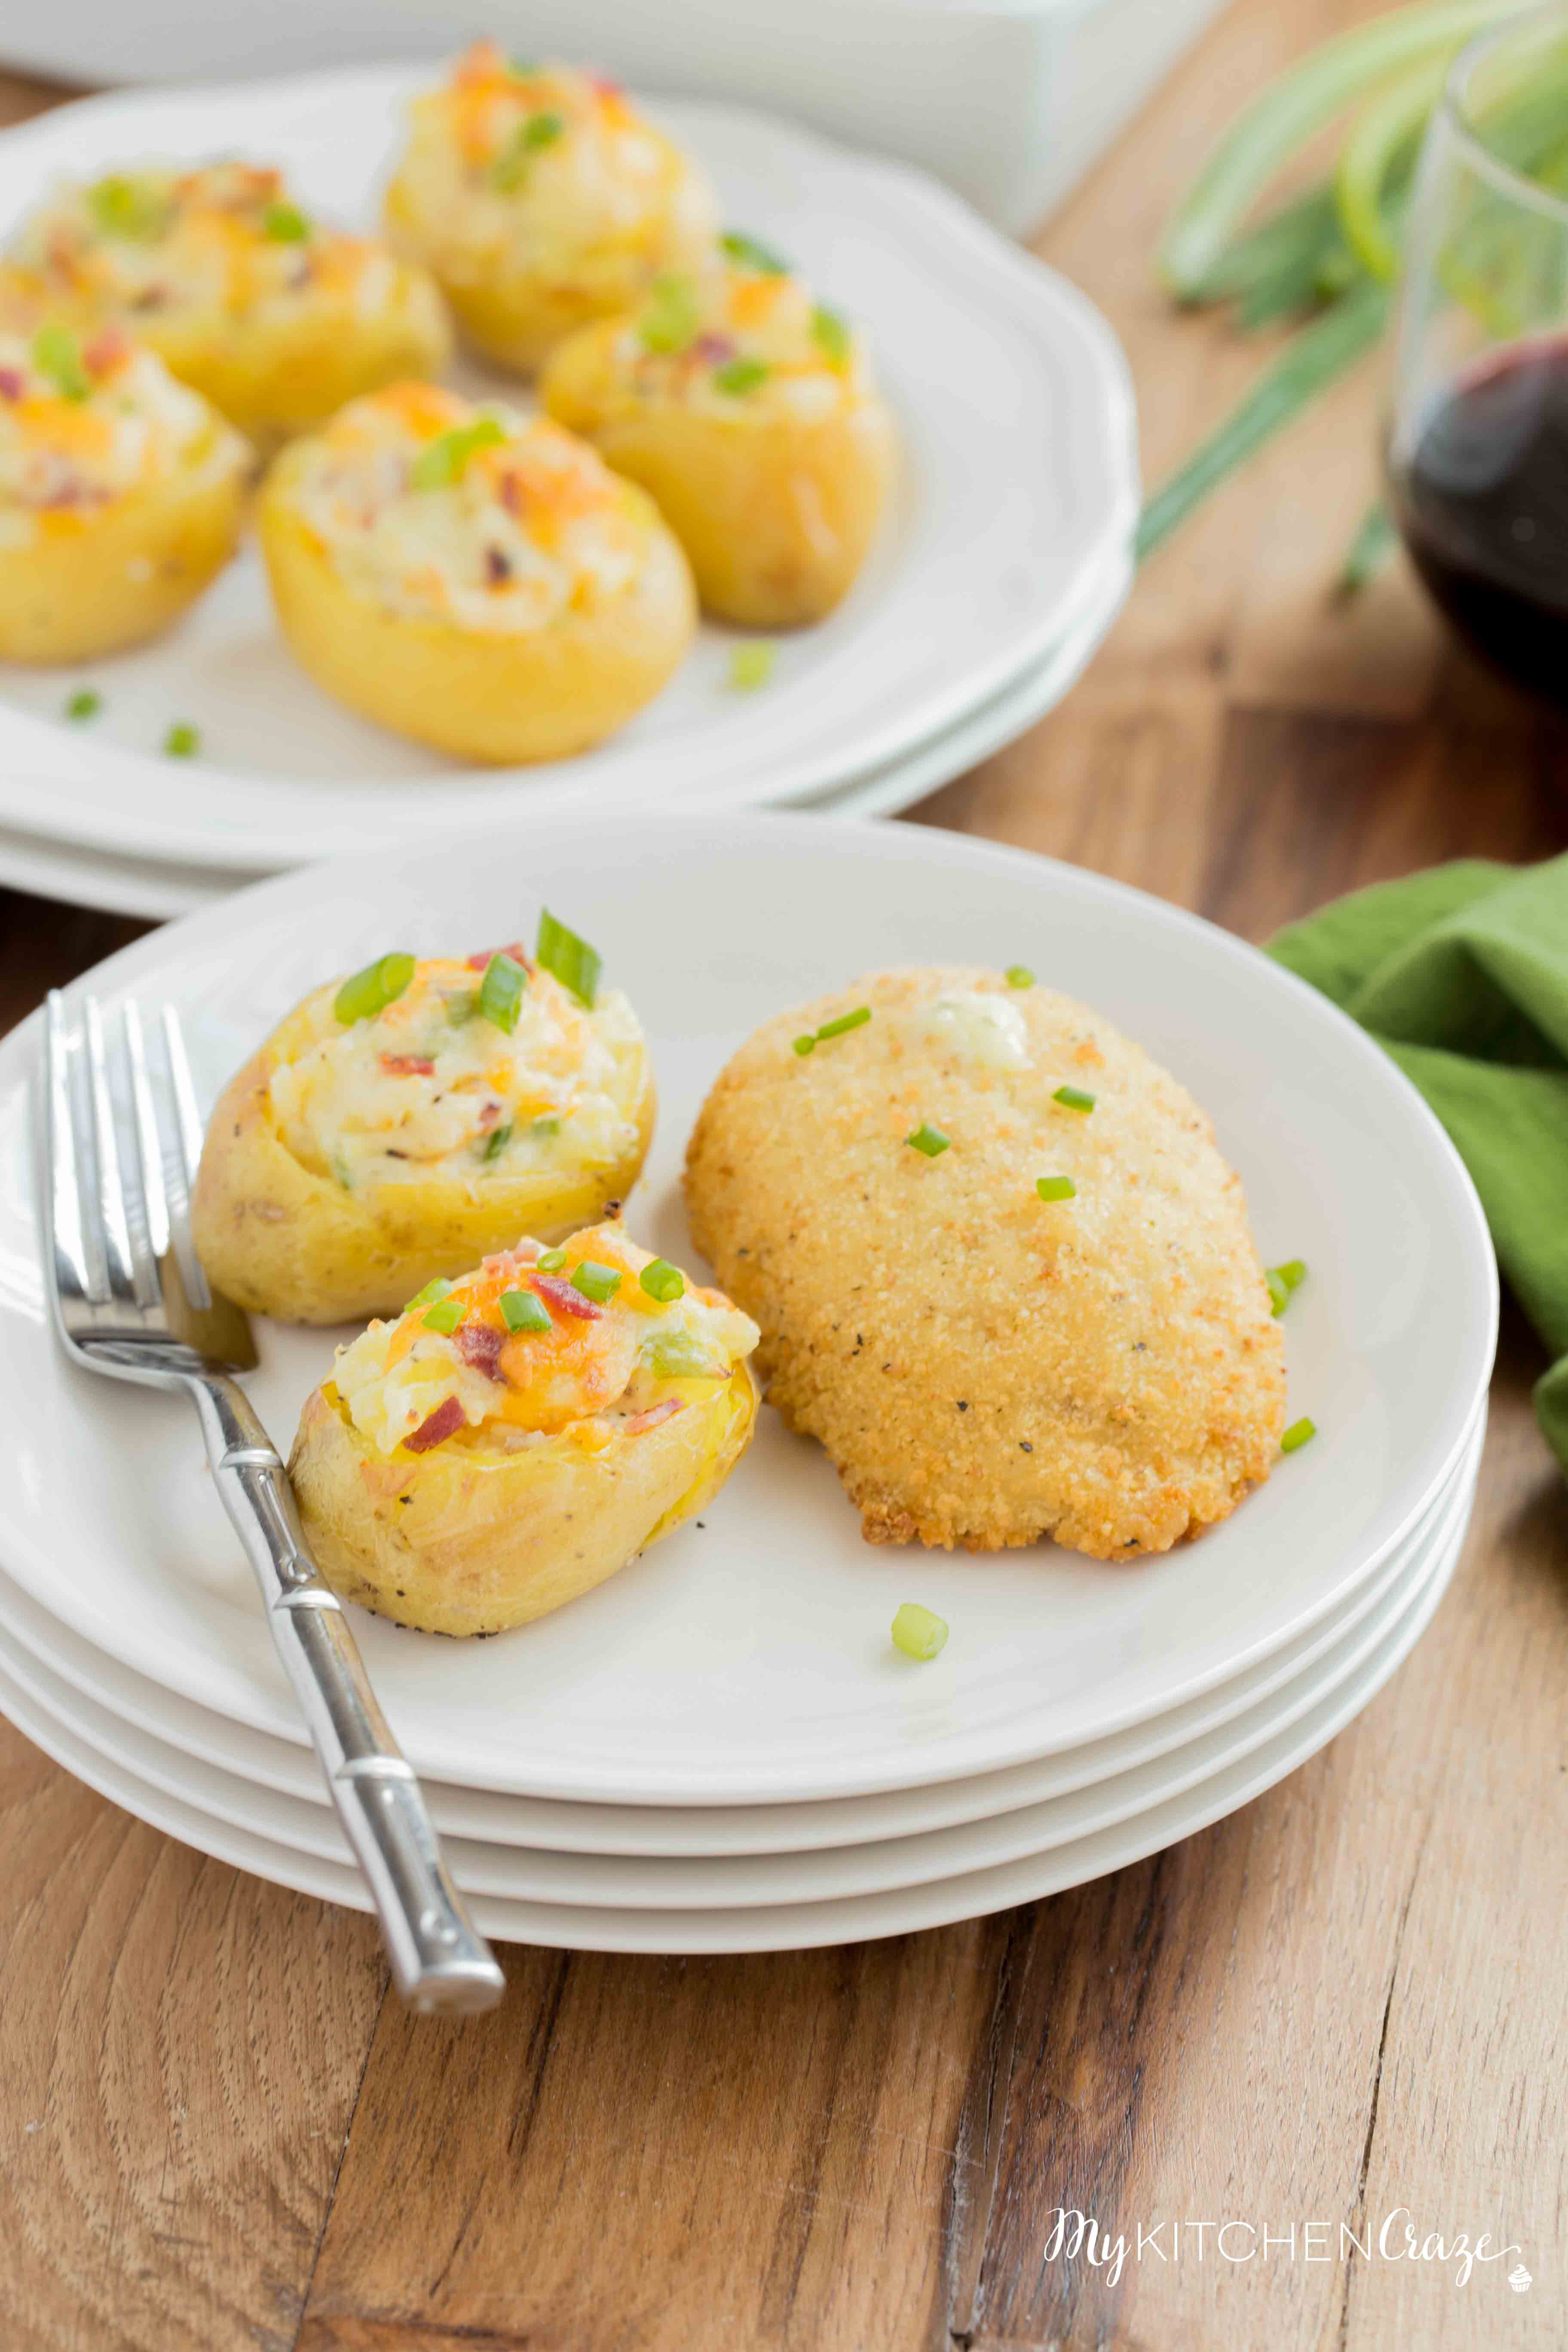 Mini Twice Baked Potatoes ~ Potatoes baked to perfection then loaded with bacon, green onions and cheese. All the yummy things you need for a side! These mini twice baked potatoes are the perfect side.